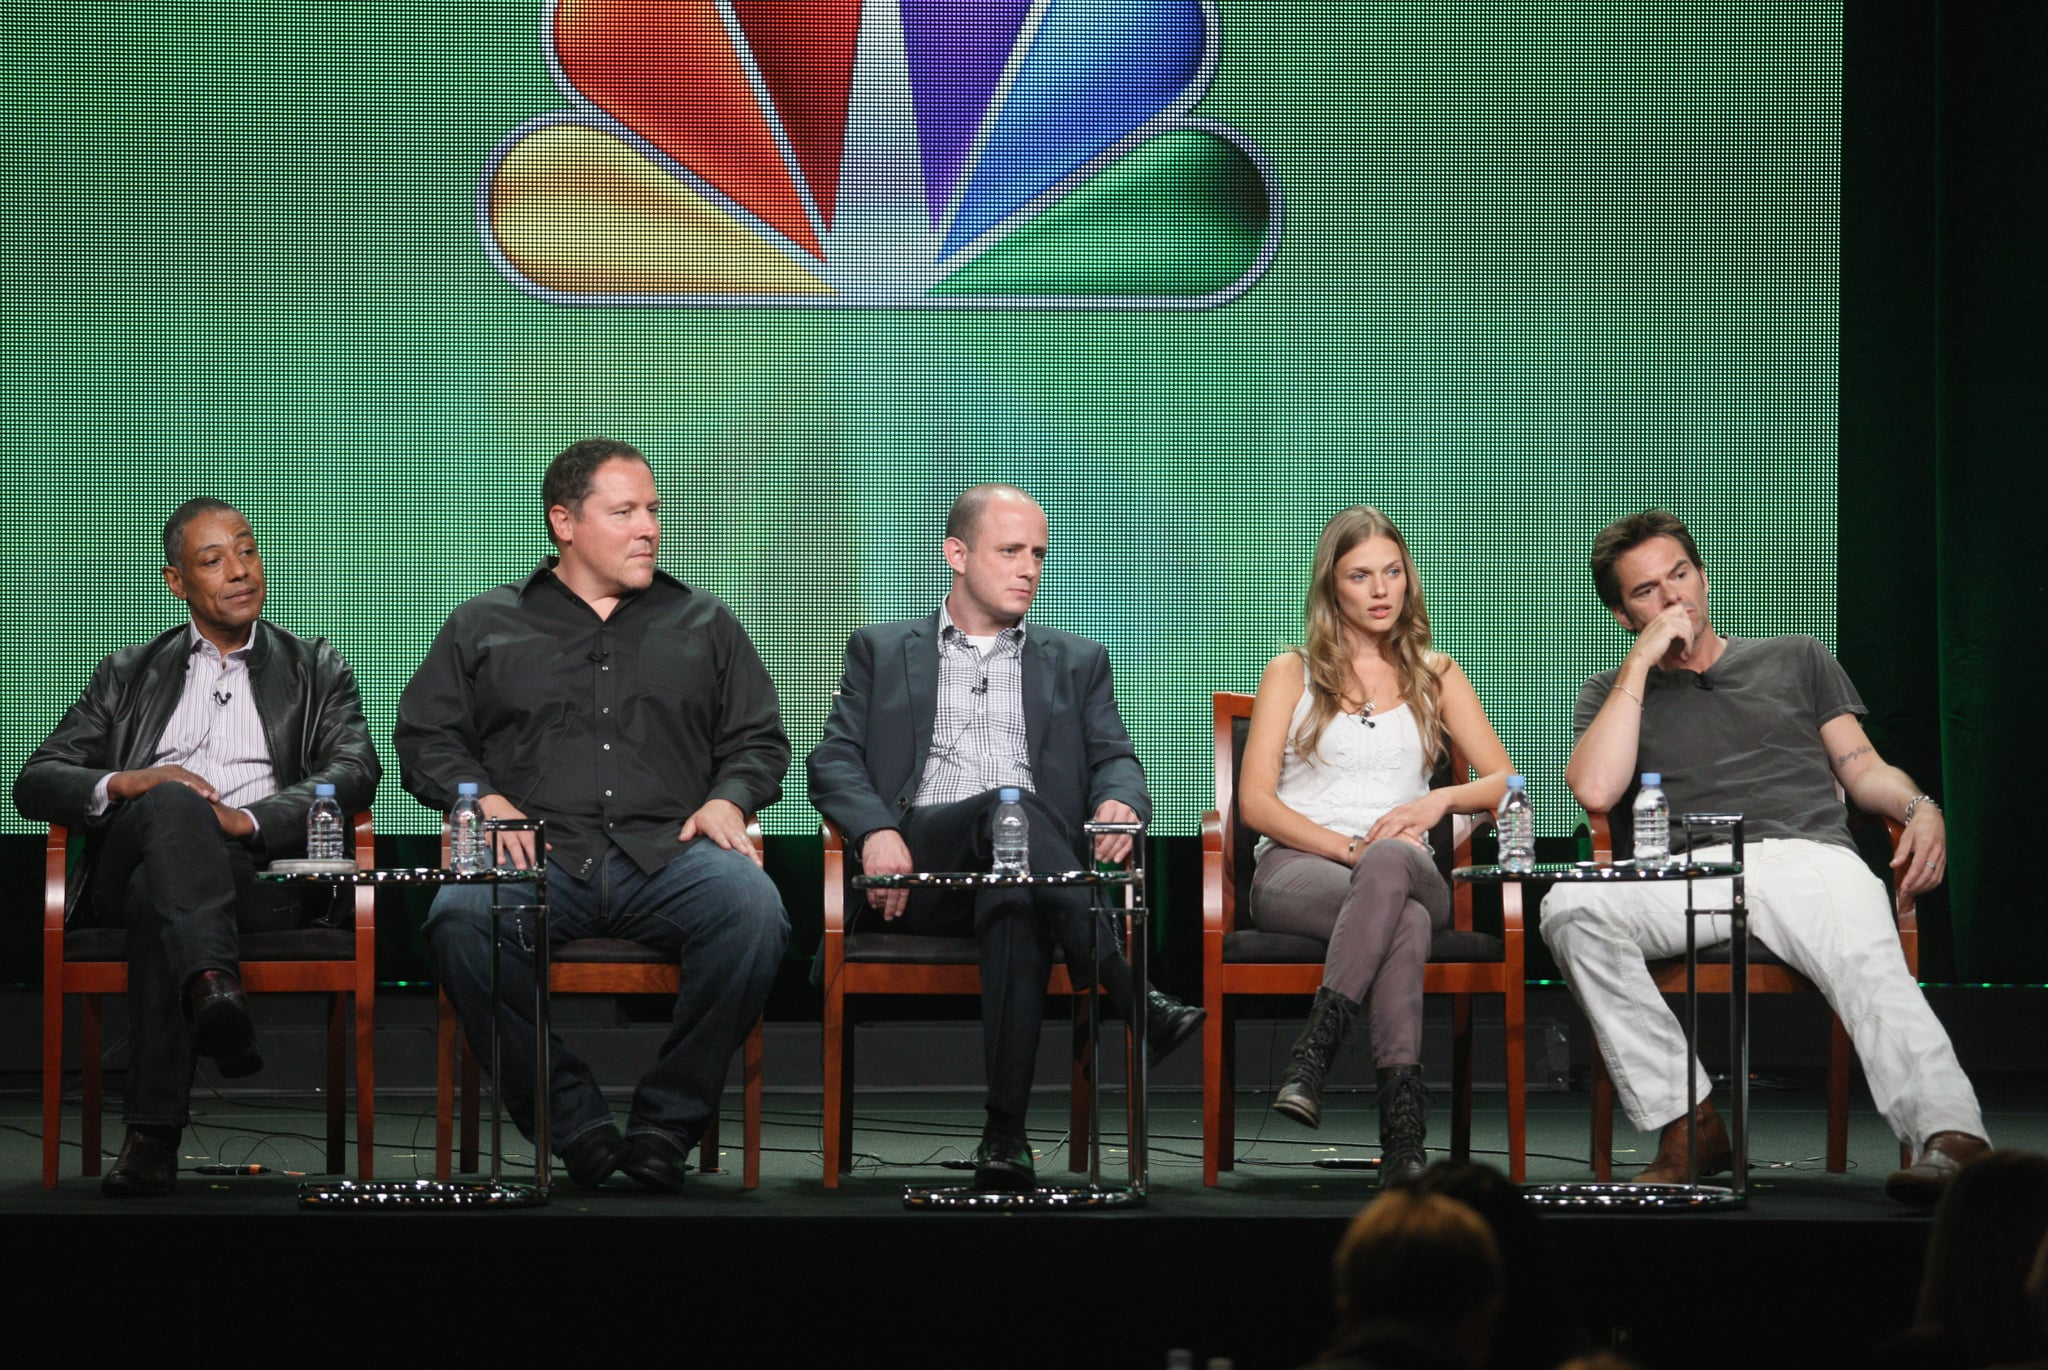 Revolution will be on NBC this Fall.